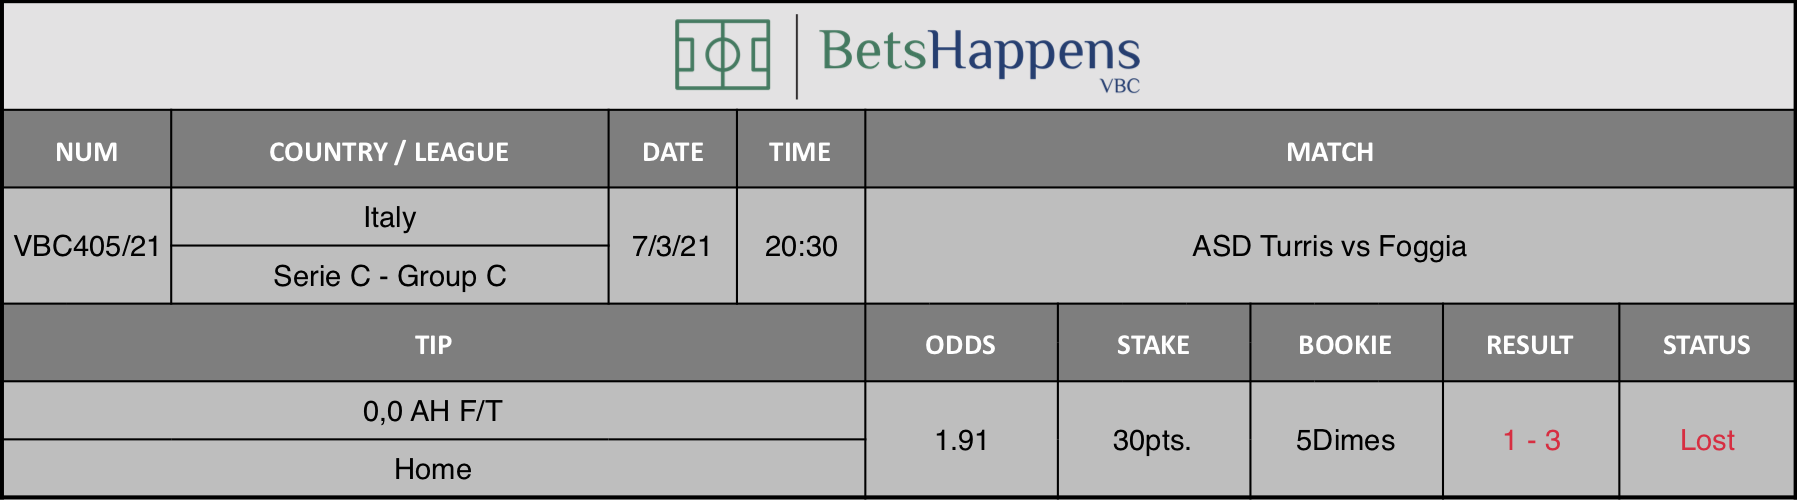 Results of our tip for the ASD Turris vs Foggia match where 0,0 AH F/T  Home is recommended.